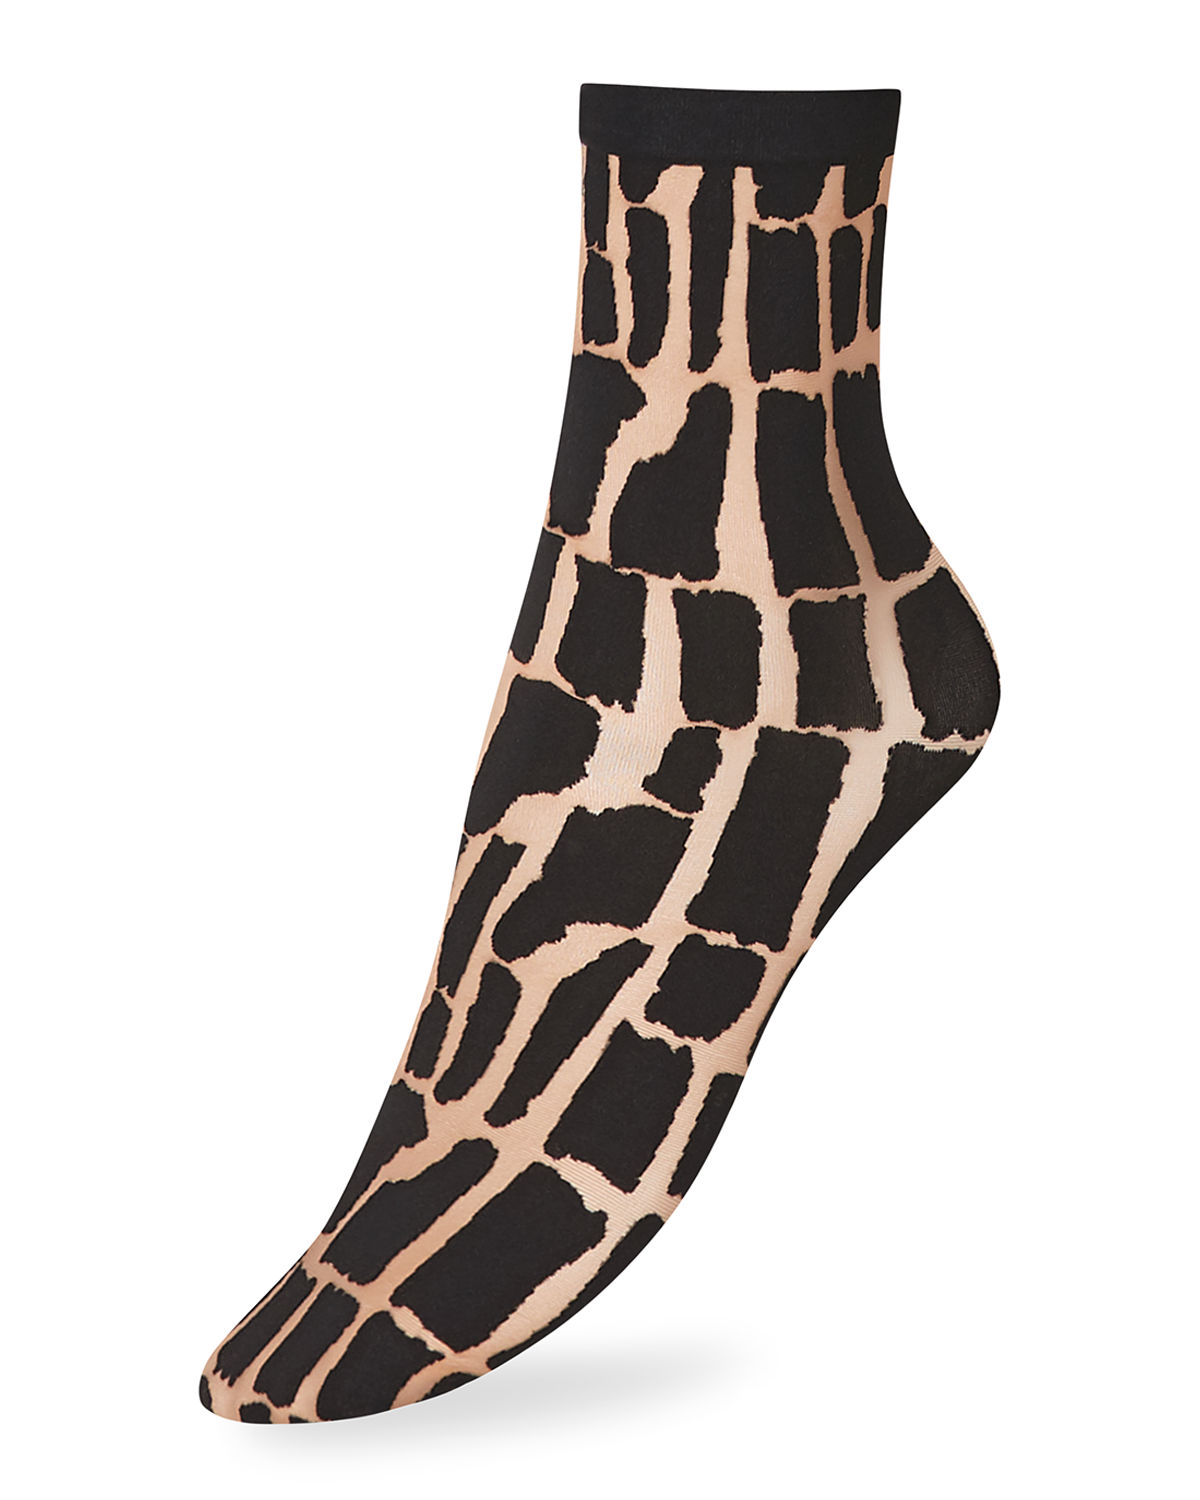 Wolford Socks SHIELD GRAPHIC ANKLE SOCKS